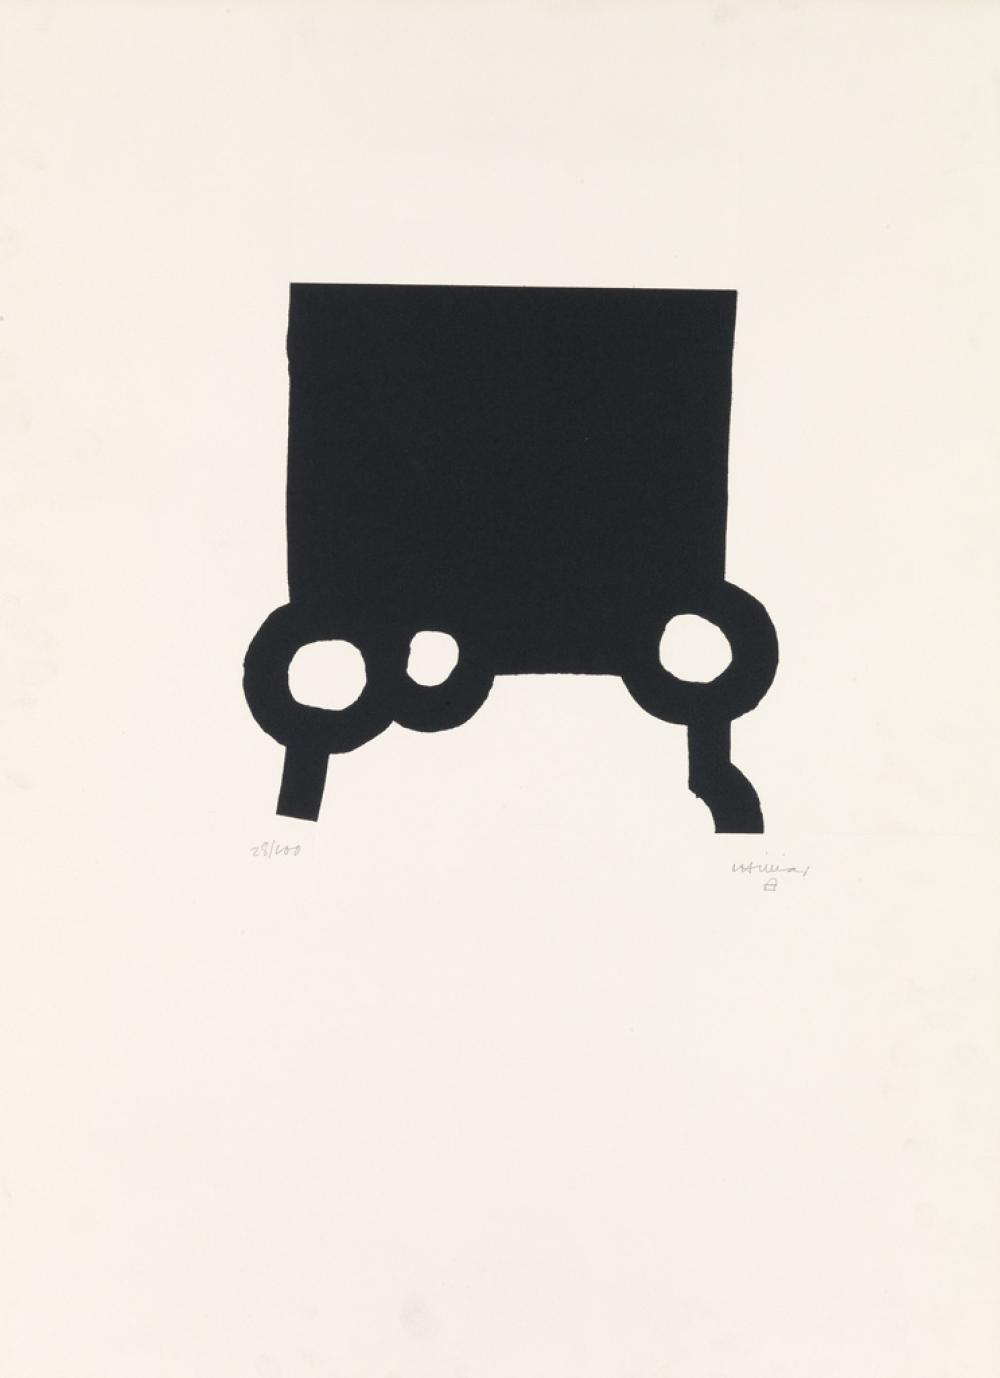 EDUARDO CHILLIDA Untitled.